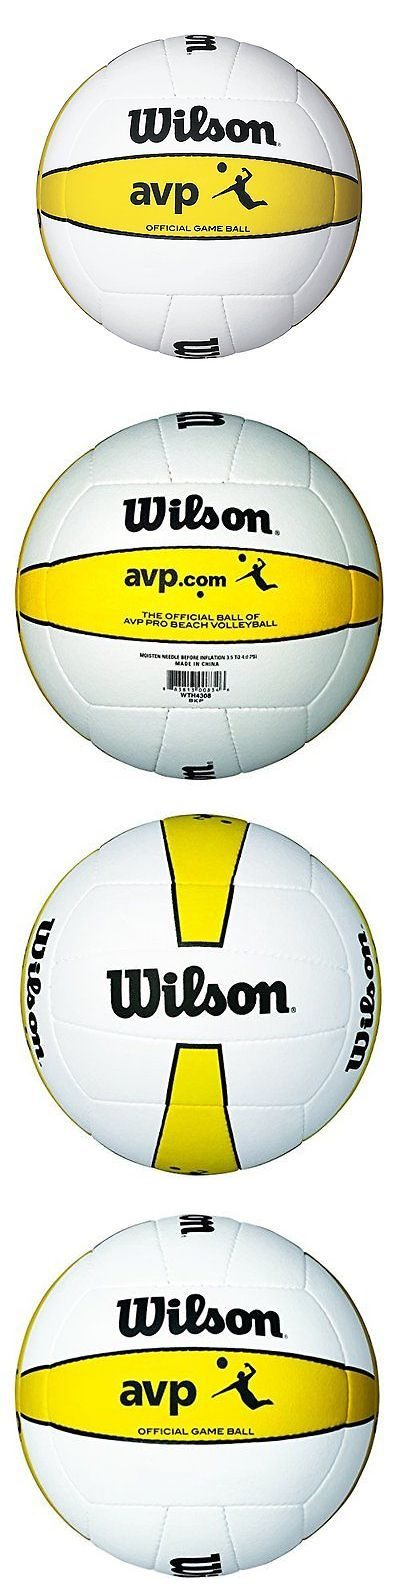 Volleyballs 159132: Wilson Official Avp Outdoor Game Volleyball -> BUY IT NOW ONLY: $52.3 on eBay!